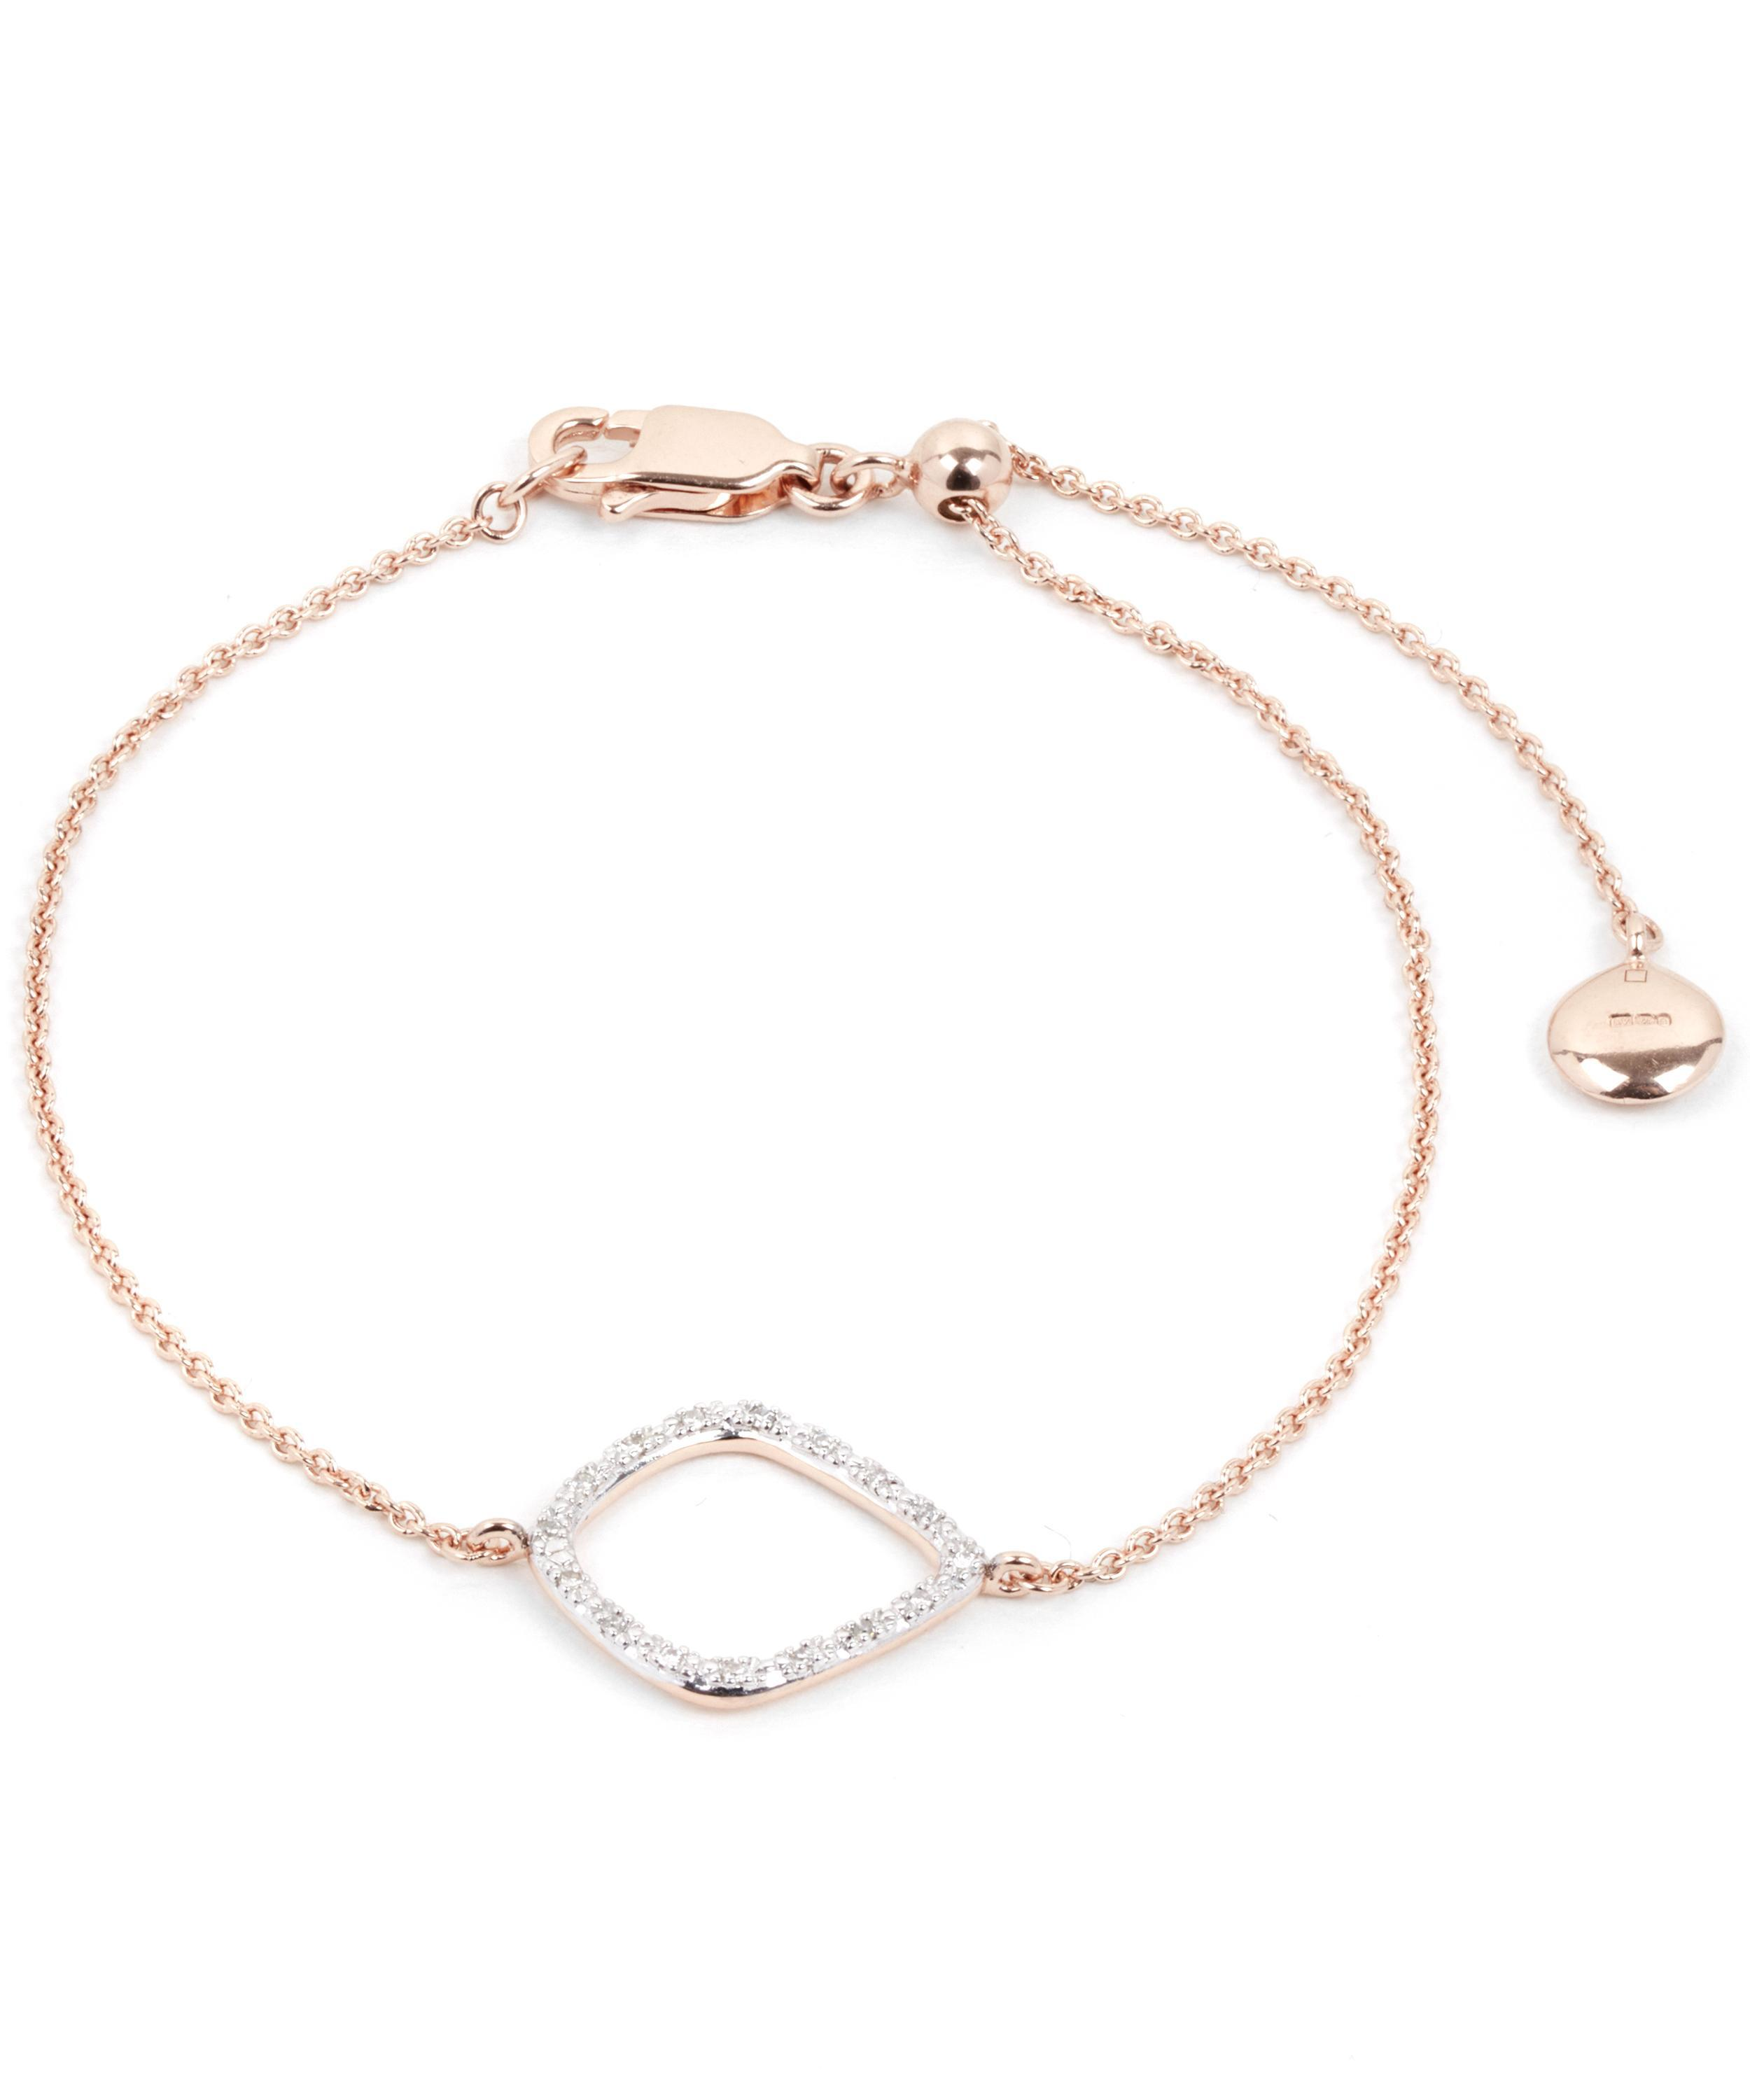 Rose Gold Riva Large Hoop Bracelet Diamond Monica Vinader